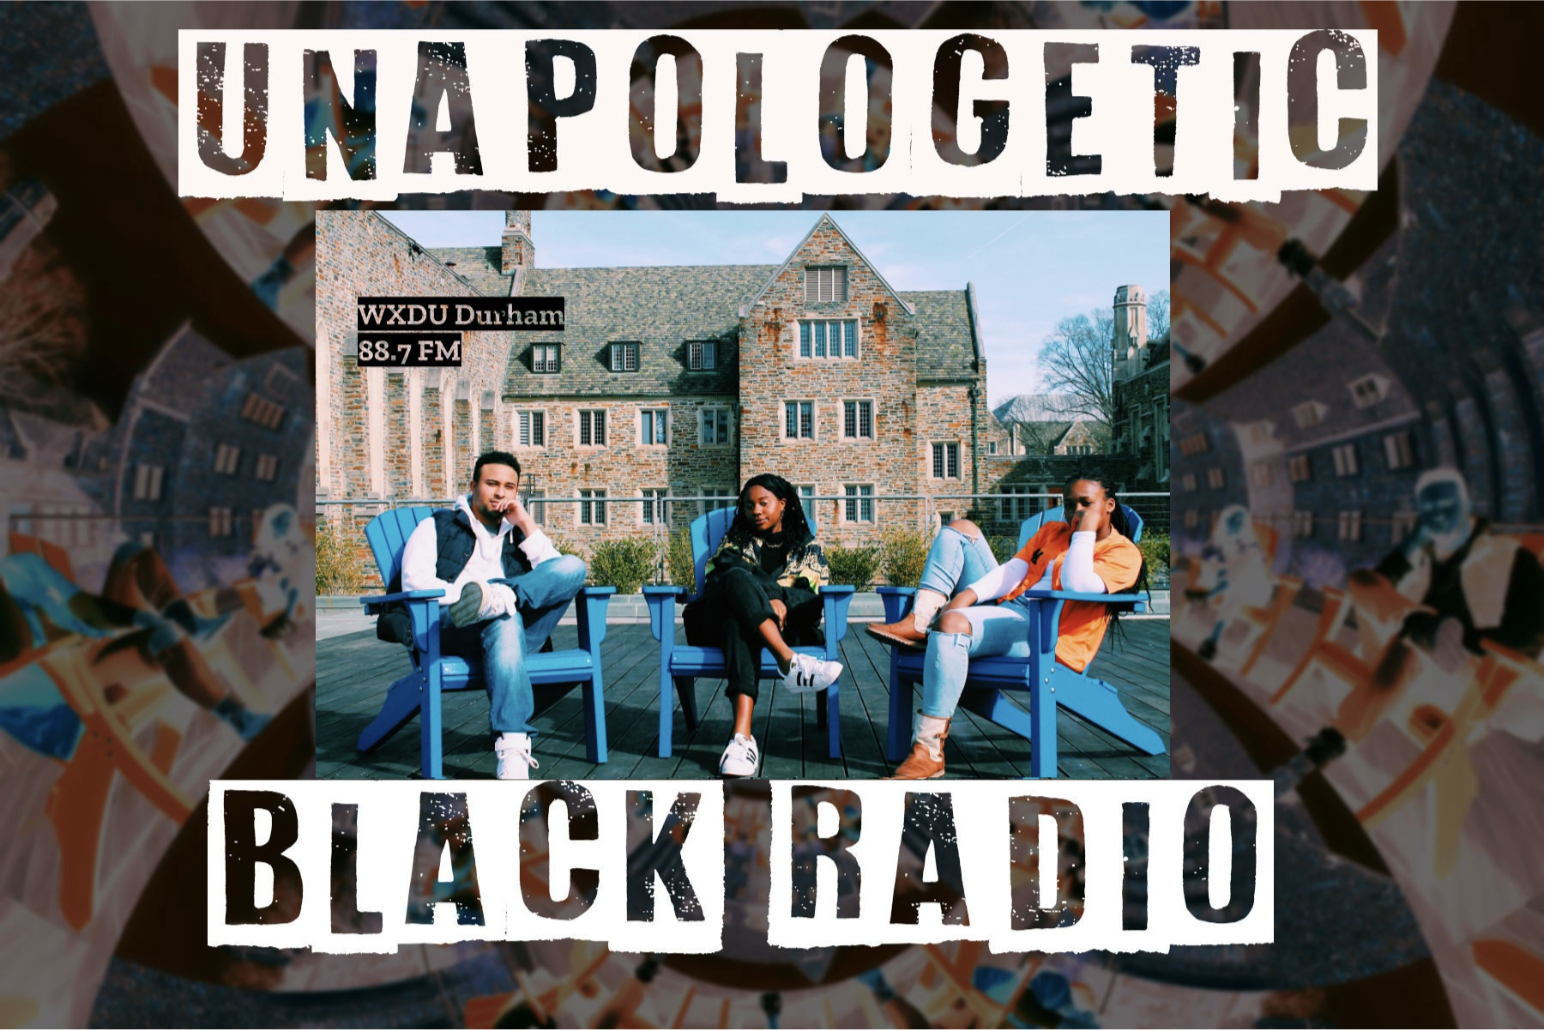 Unapologetic Black Radio